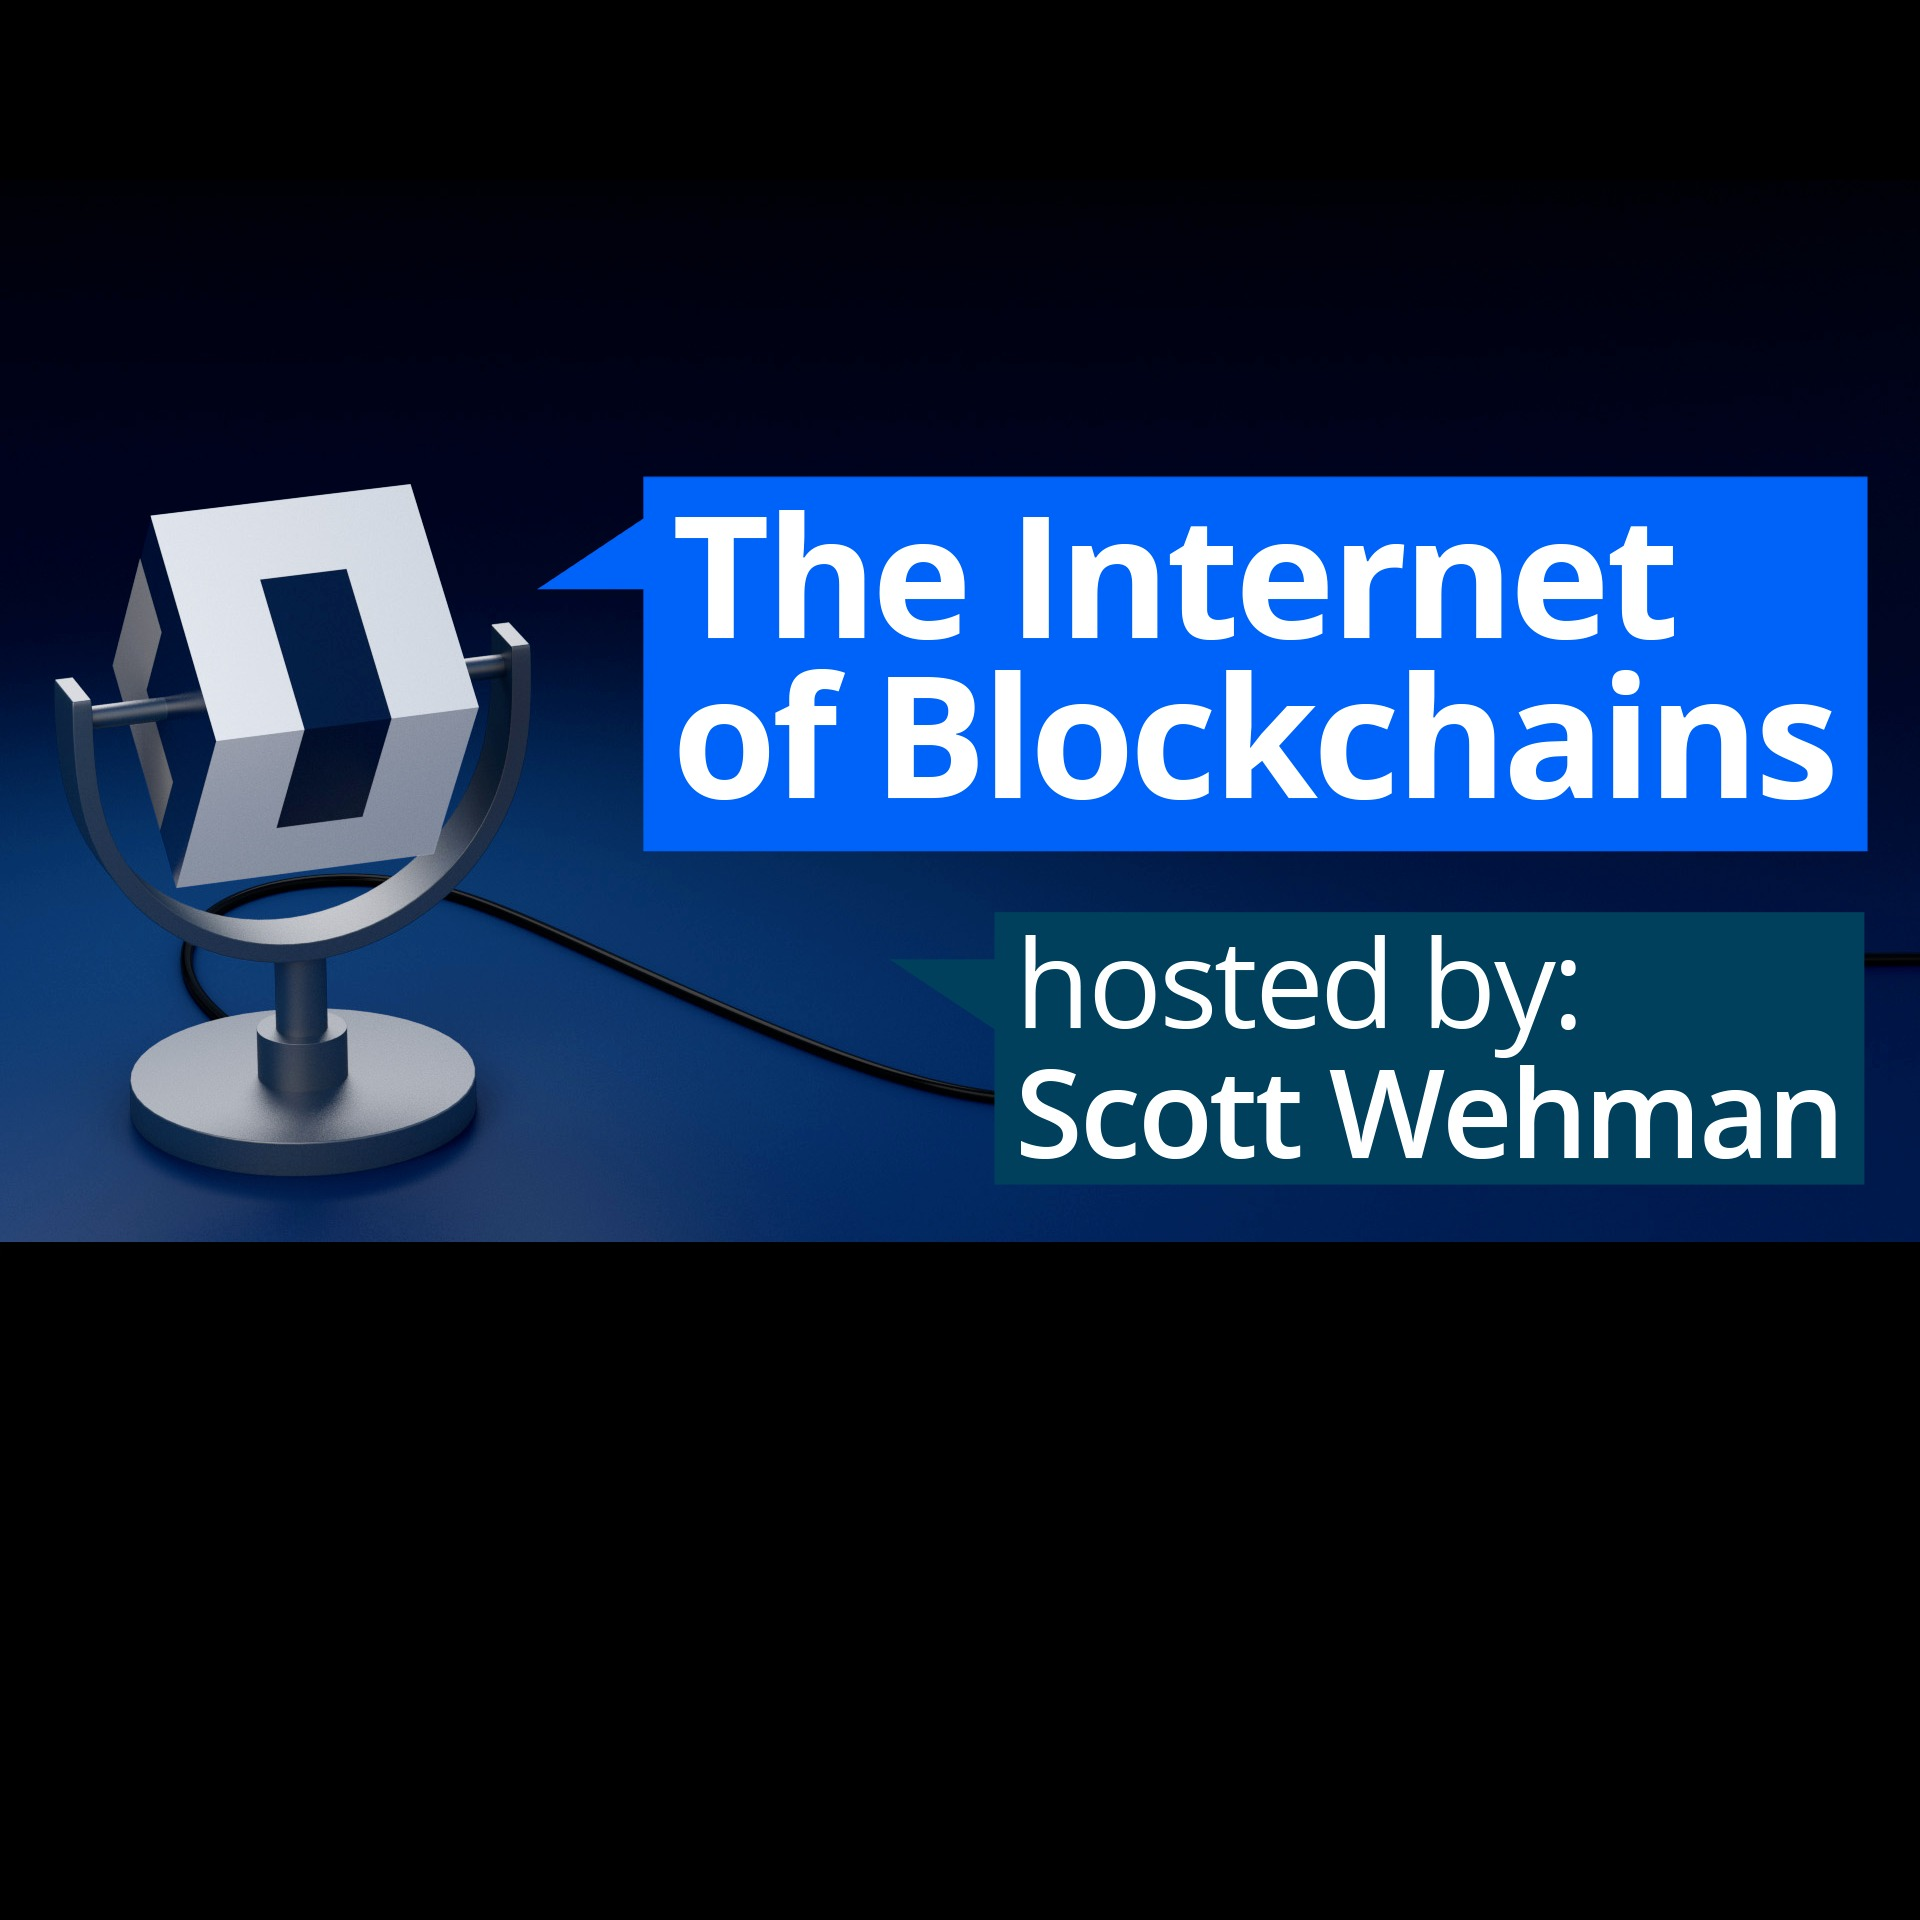 The Internet of Blockchains